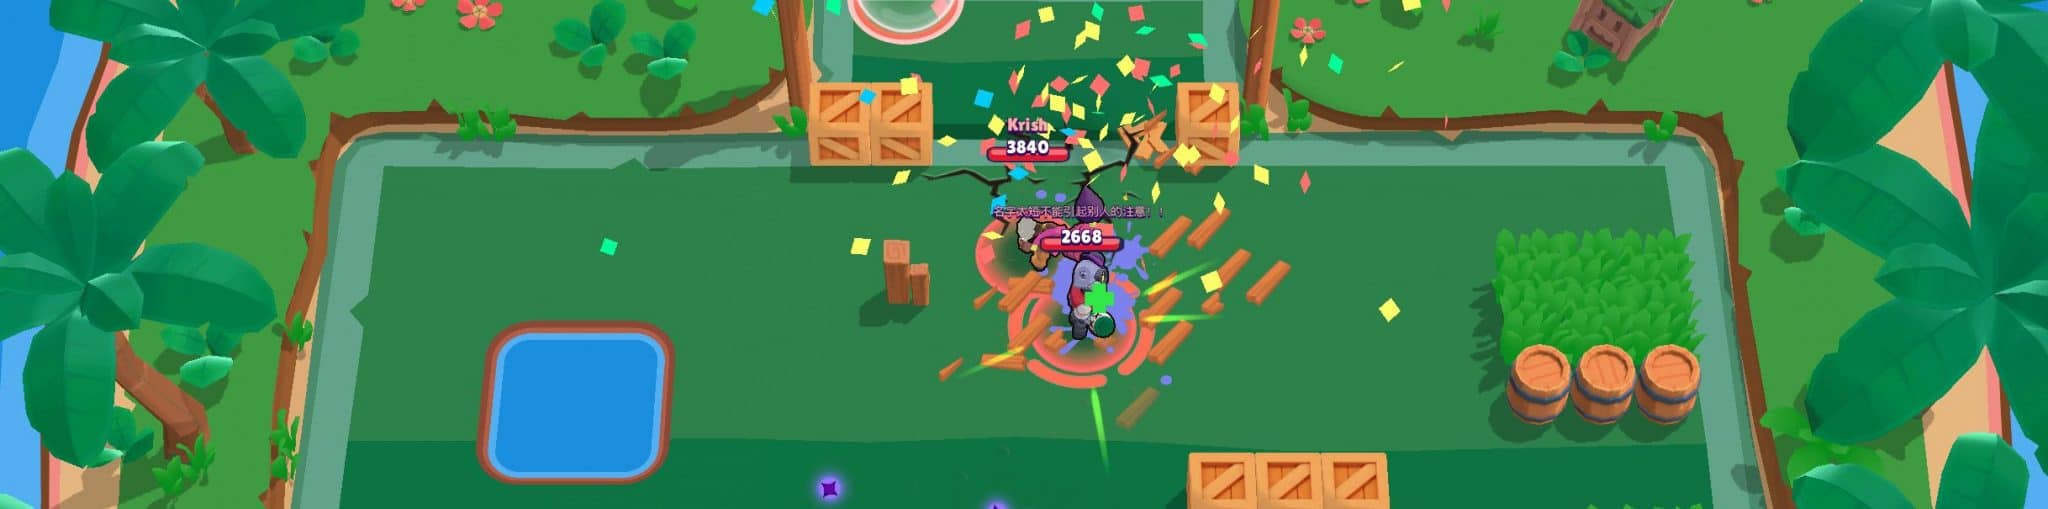 scoring in brawl stars